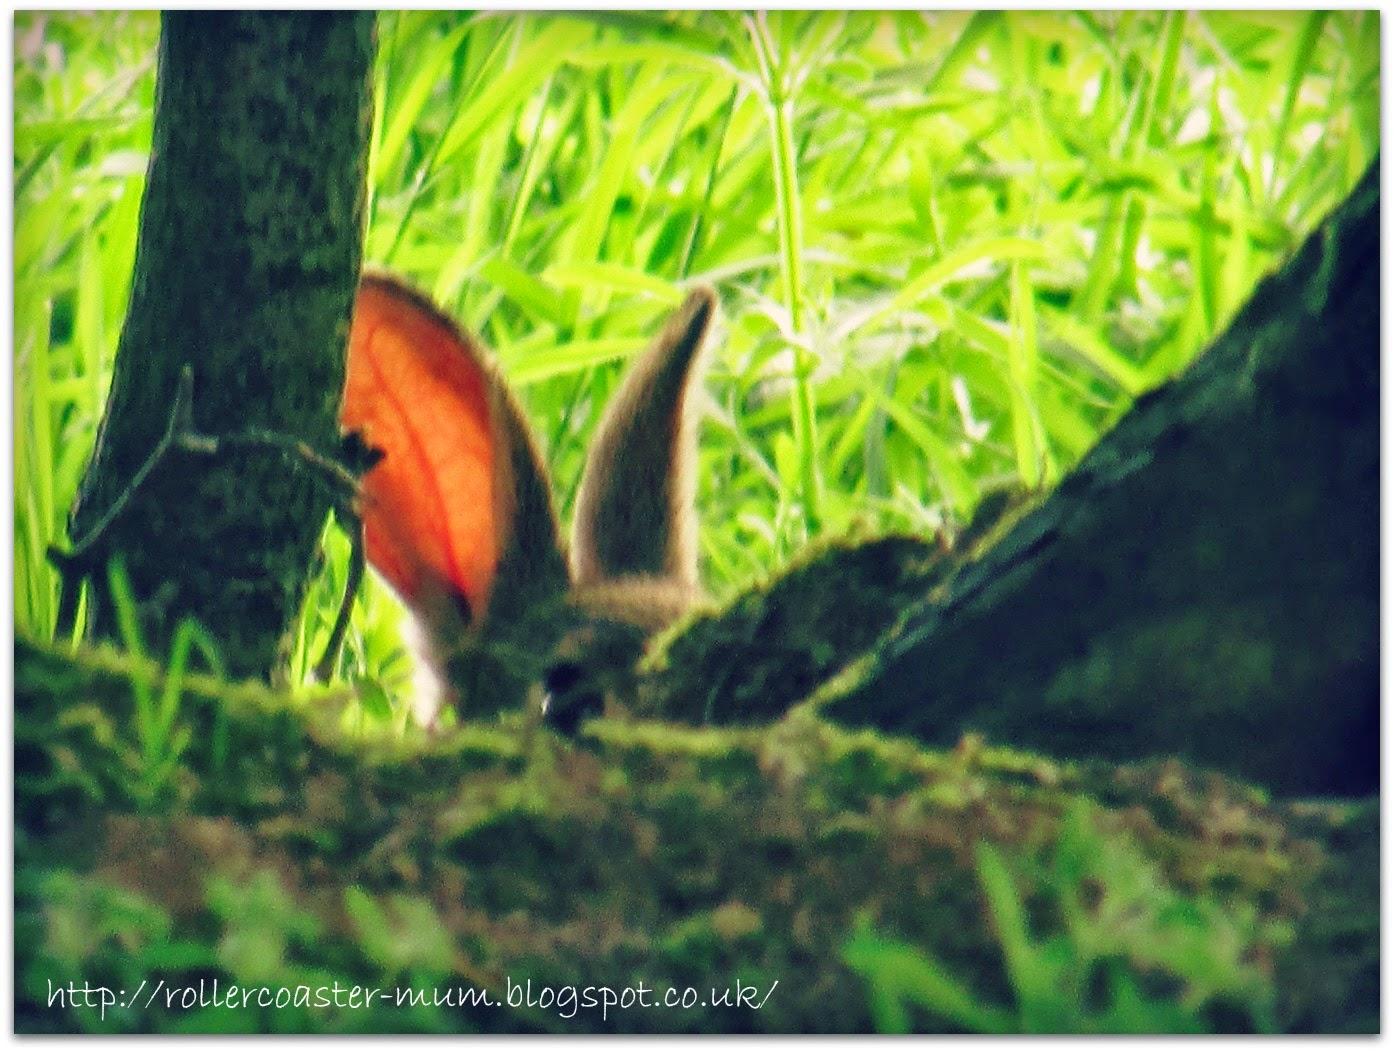 wild rabbit hiding